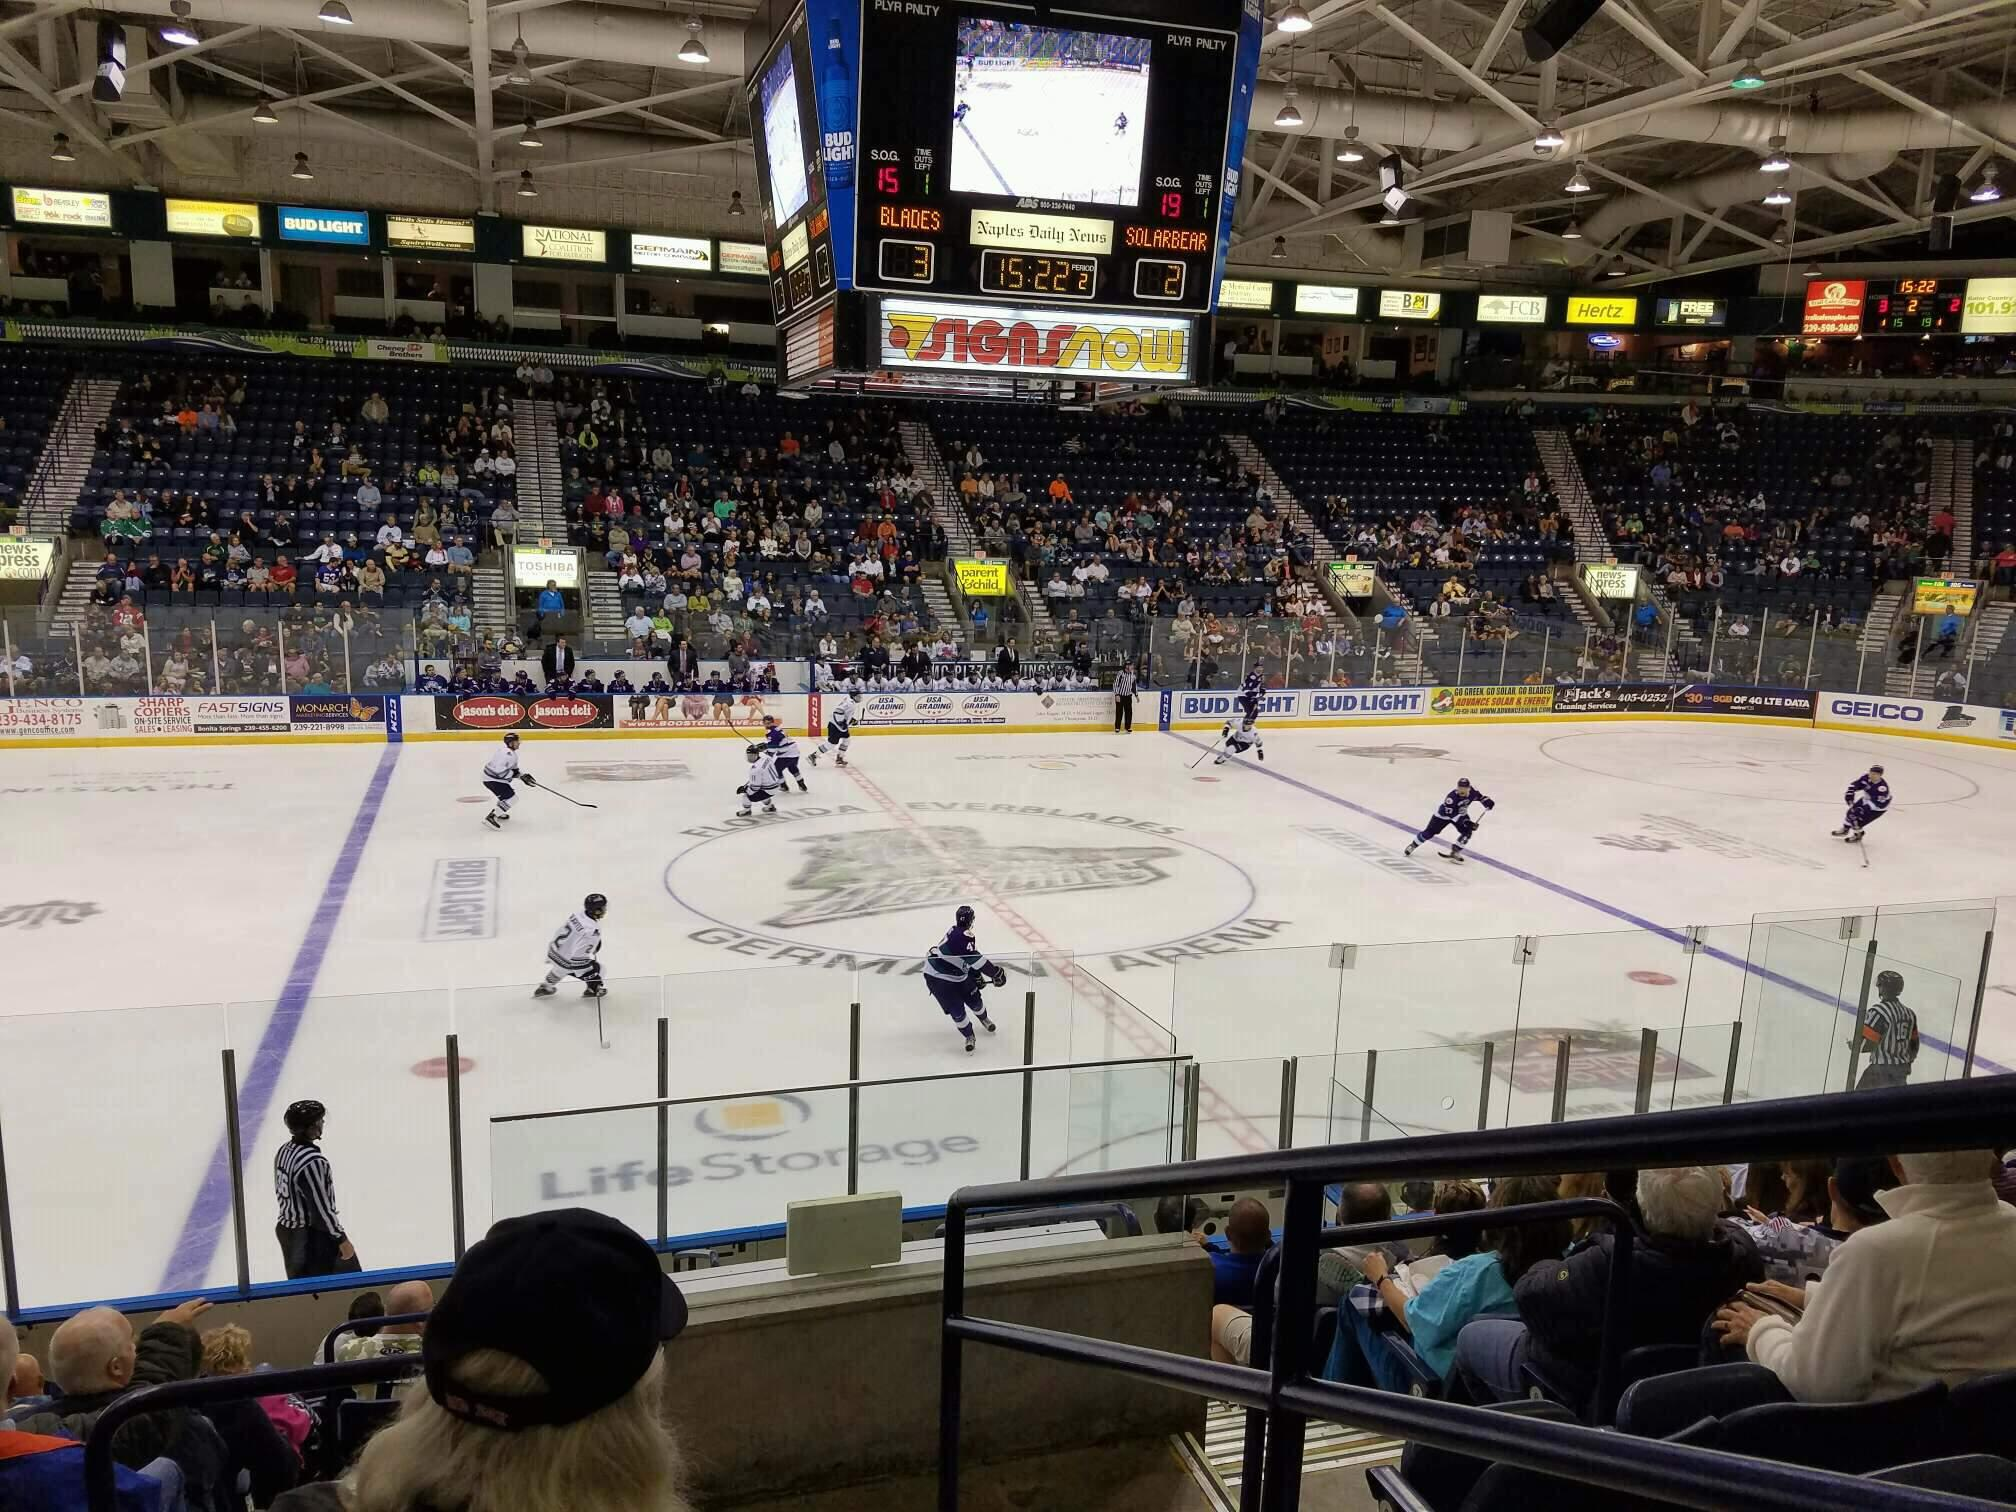 Germain Arena Section 112 Row 12 Seat 1